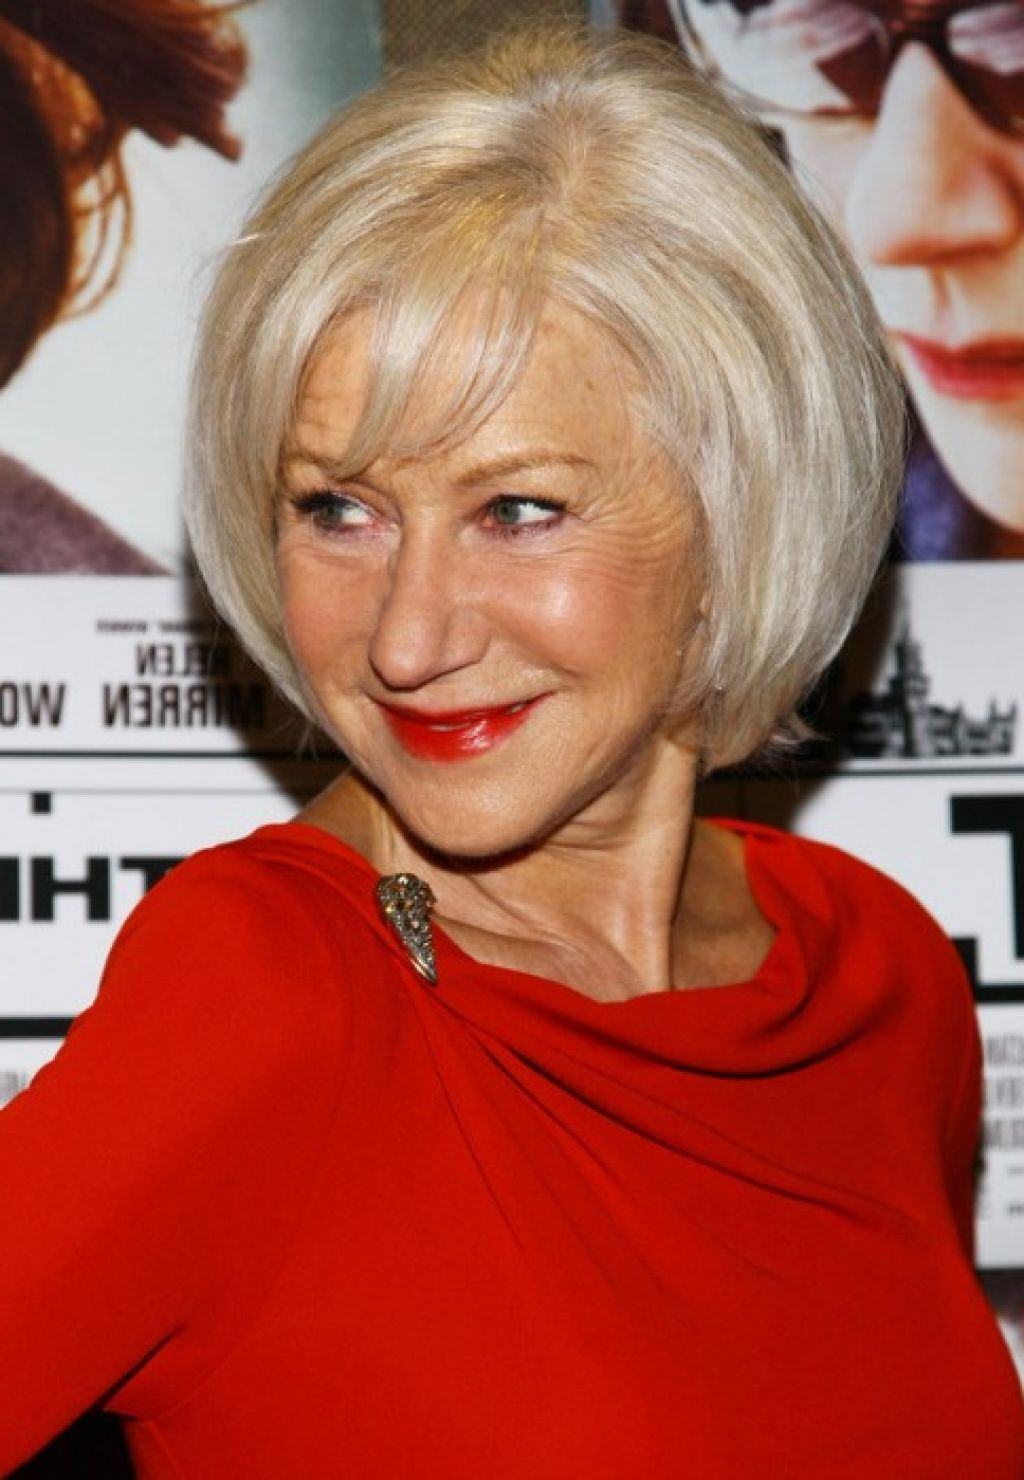 Cu cute bob hairstyles for women over 50 - Summer Hairstyles For Women Over 60